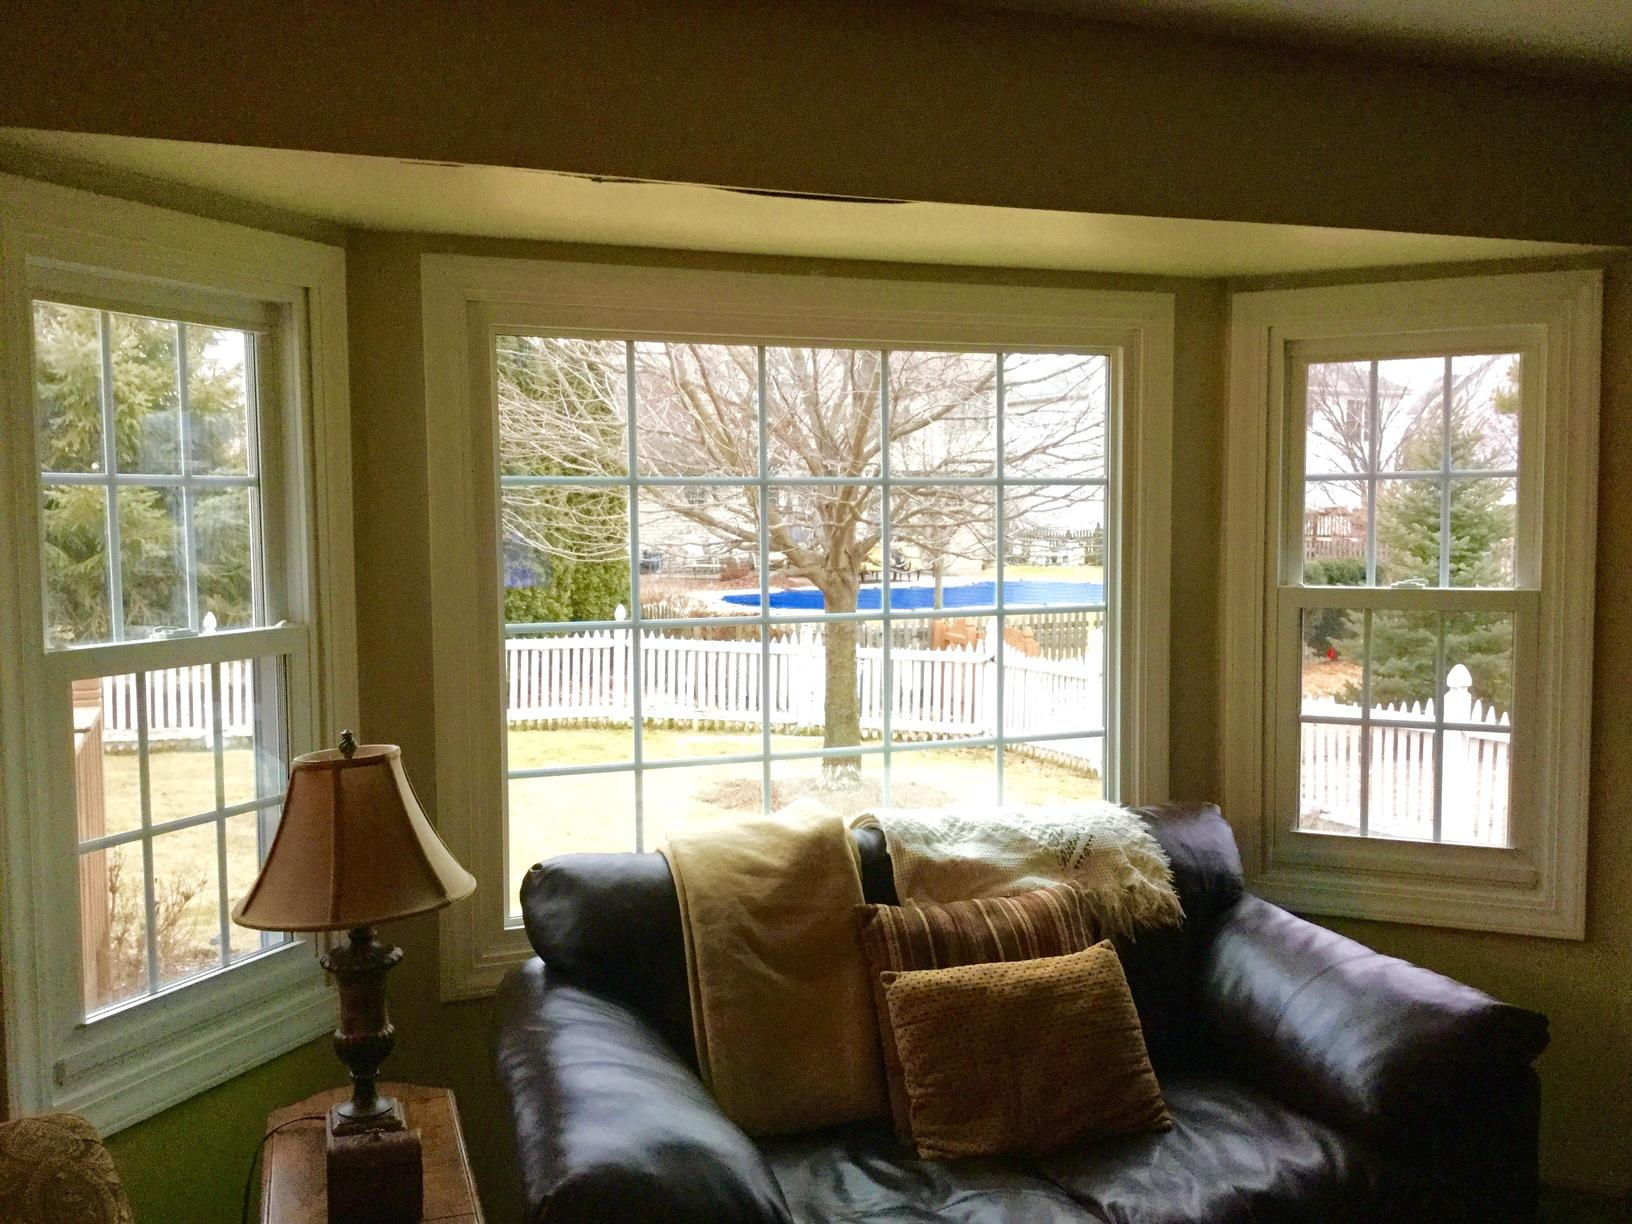 Window Replacement in Plainfield IL - After Photo